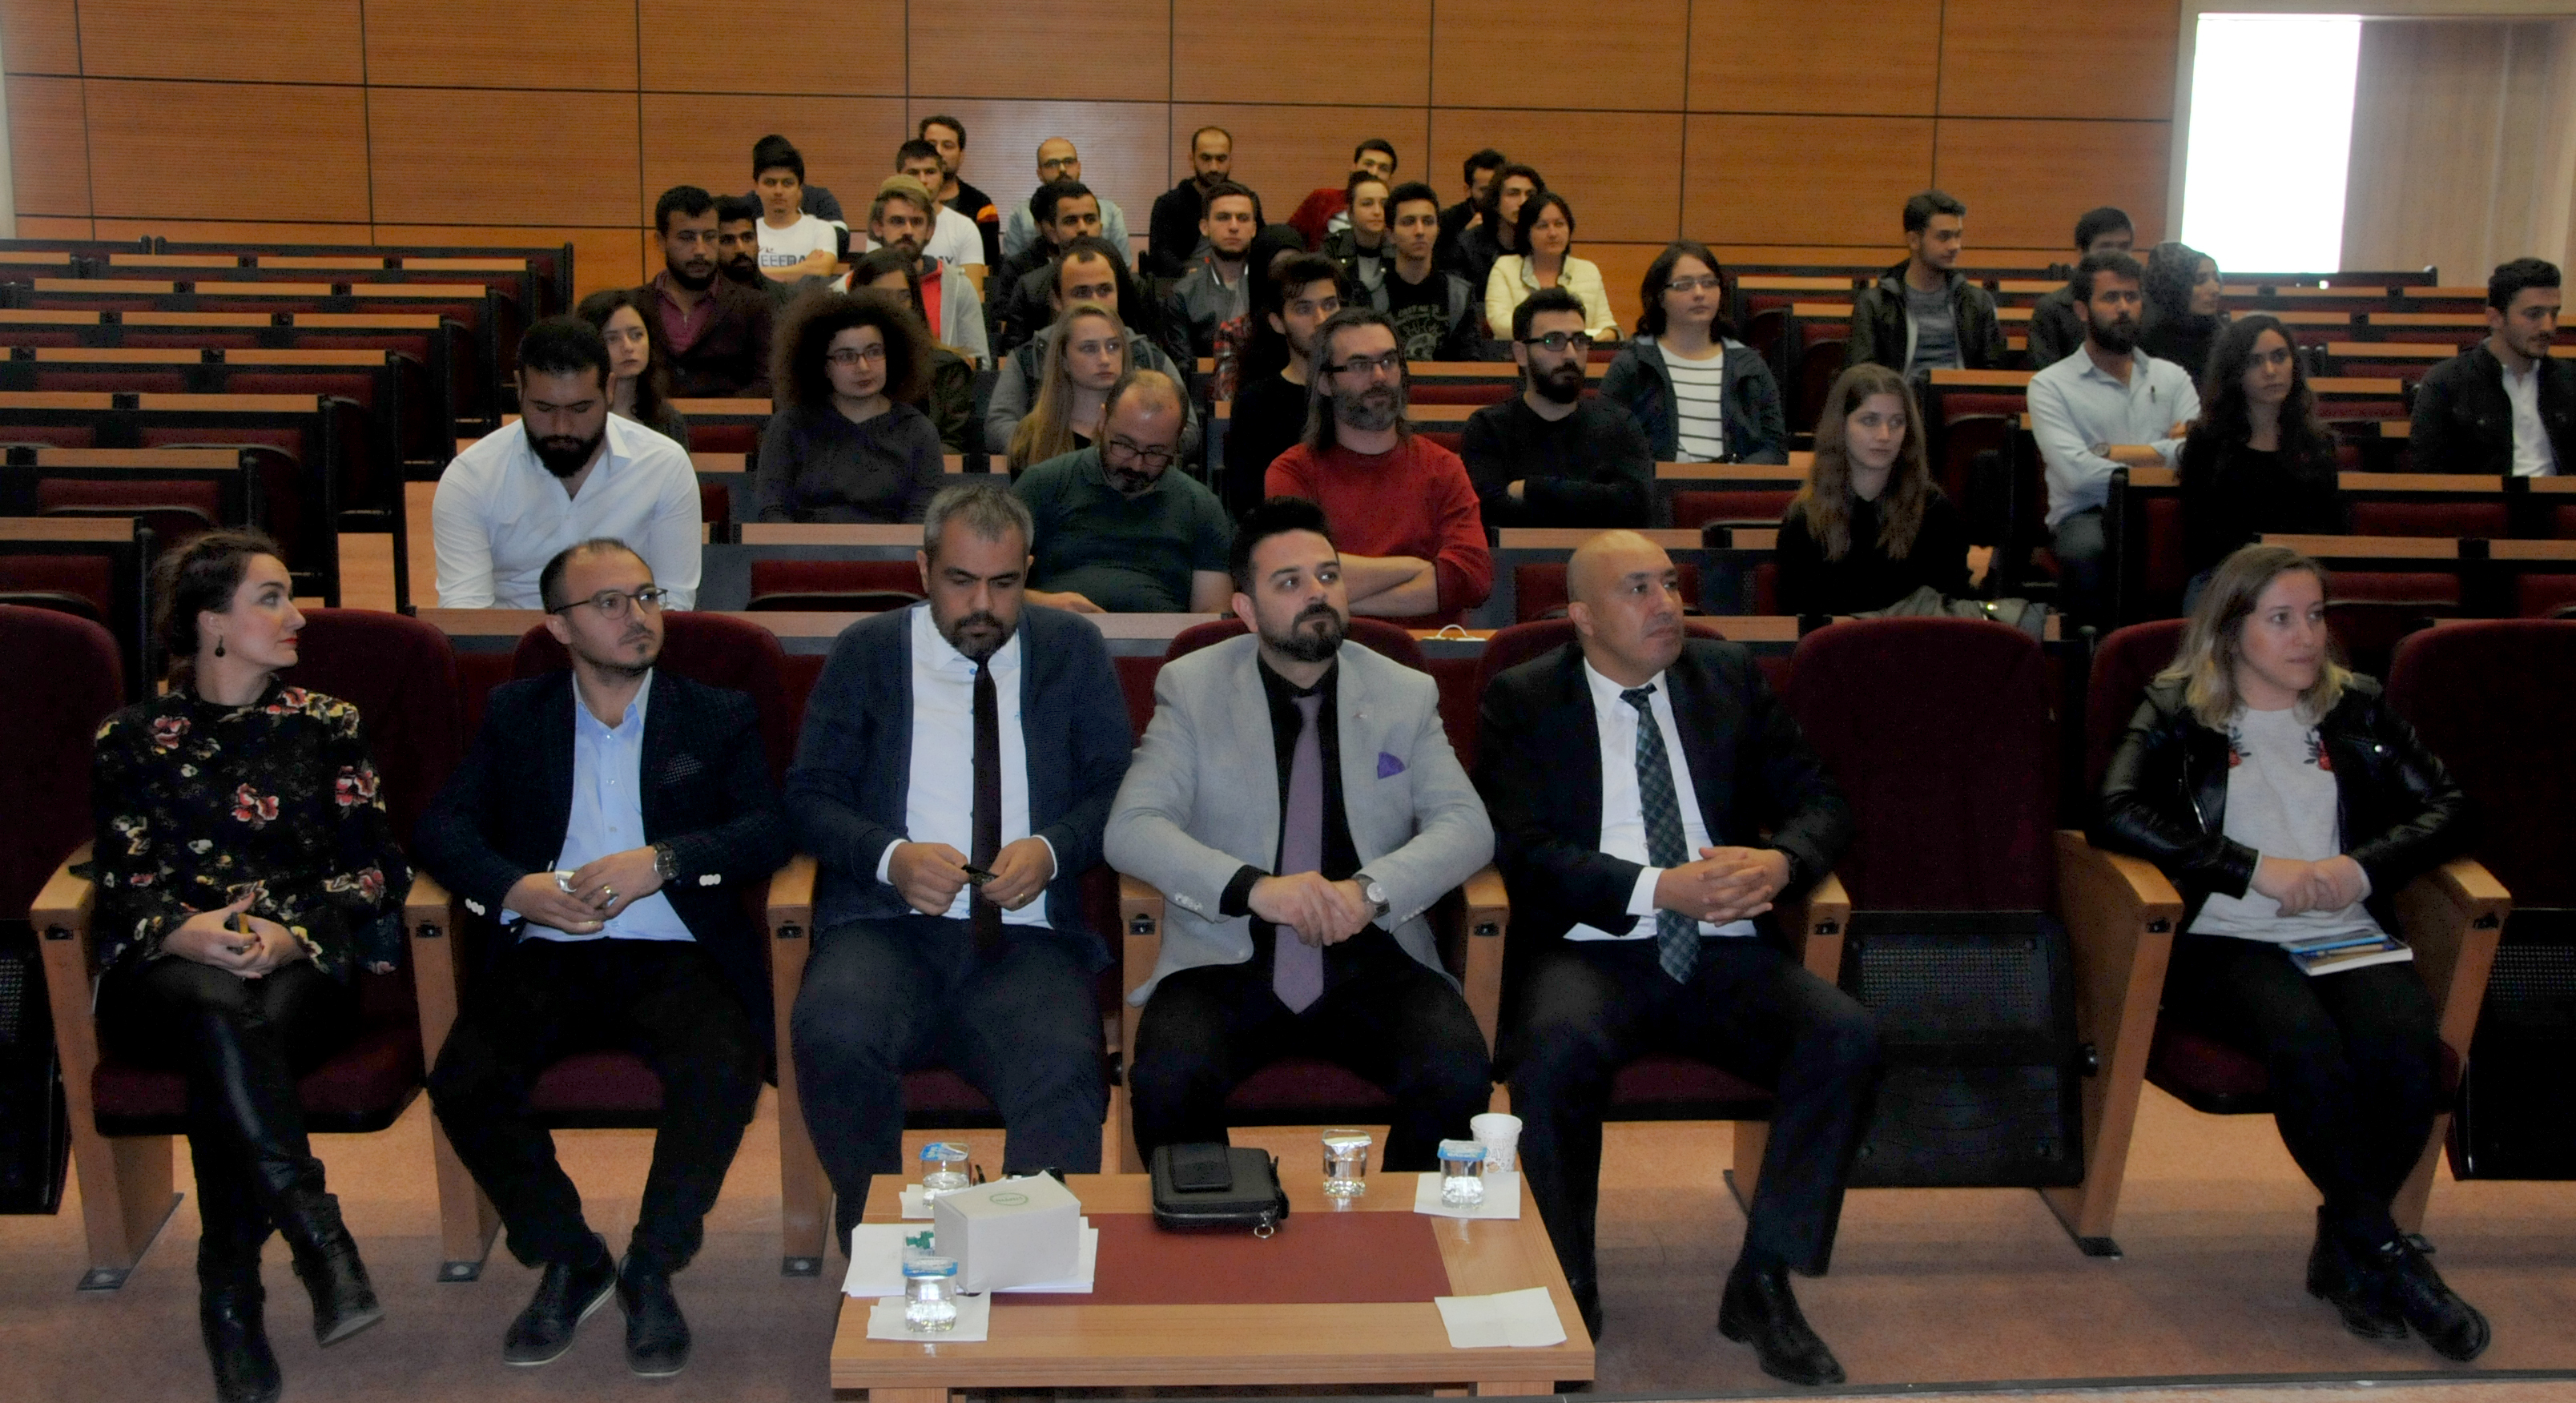 http://www.omu.edu.tr/sites/default/files/files/samsun_technopark_shares_its_projects_with_students/dsc_0146.jpg